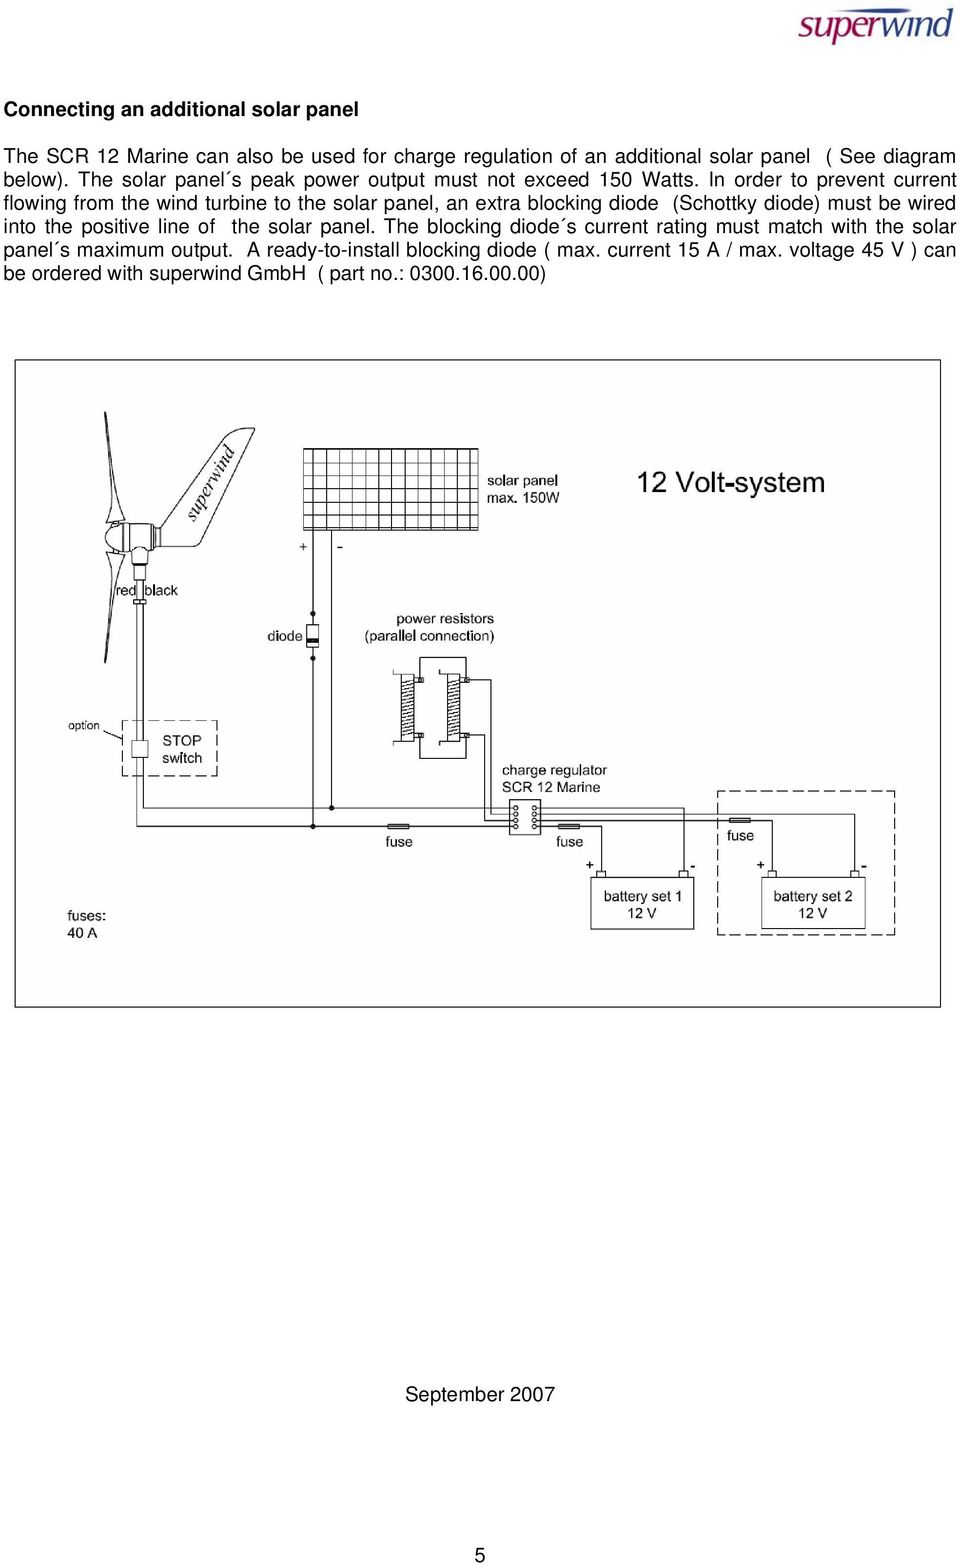 Charge Regulator Scr 12 Marine Pdf Solar Panel Wiring Diagram In Order To Prevent Current Flowing From The Wind Turbine An